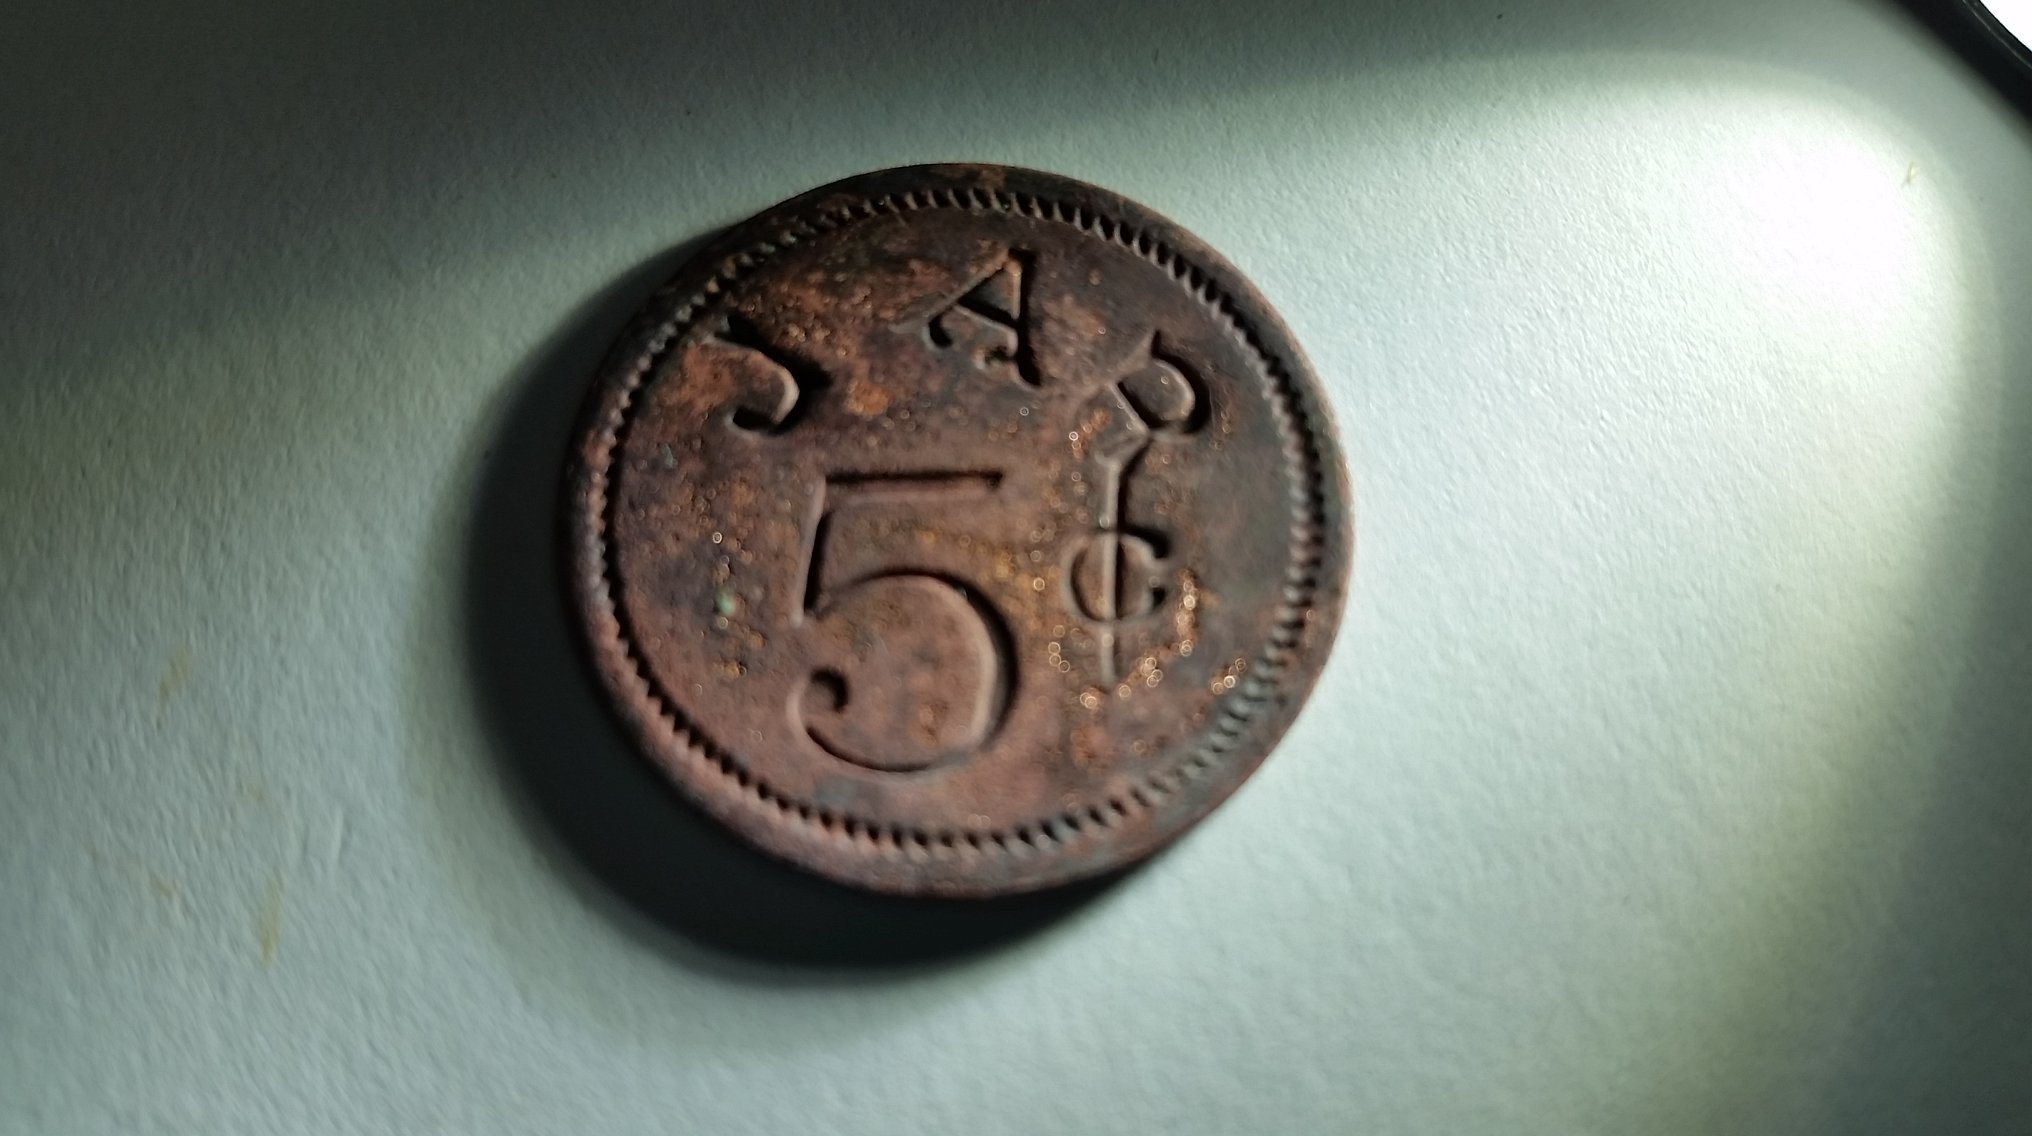 1880s merchant issued 5 cent token uncovered during the Mead's Tavern porch excavation.